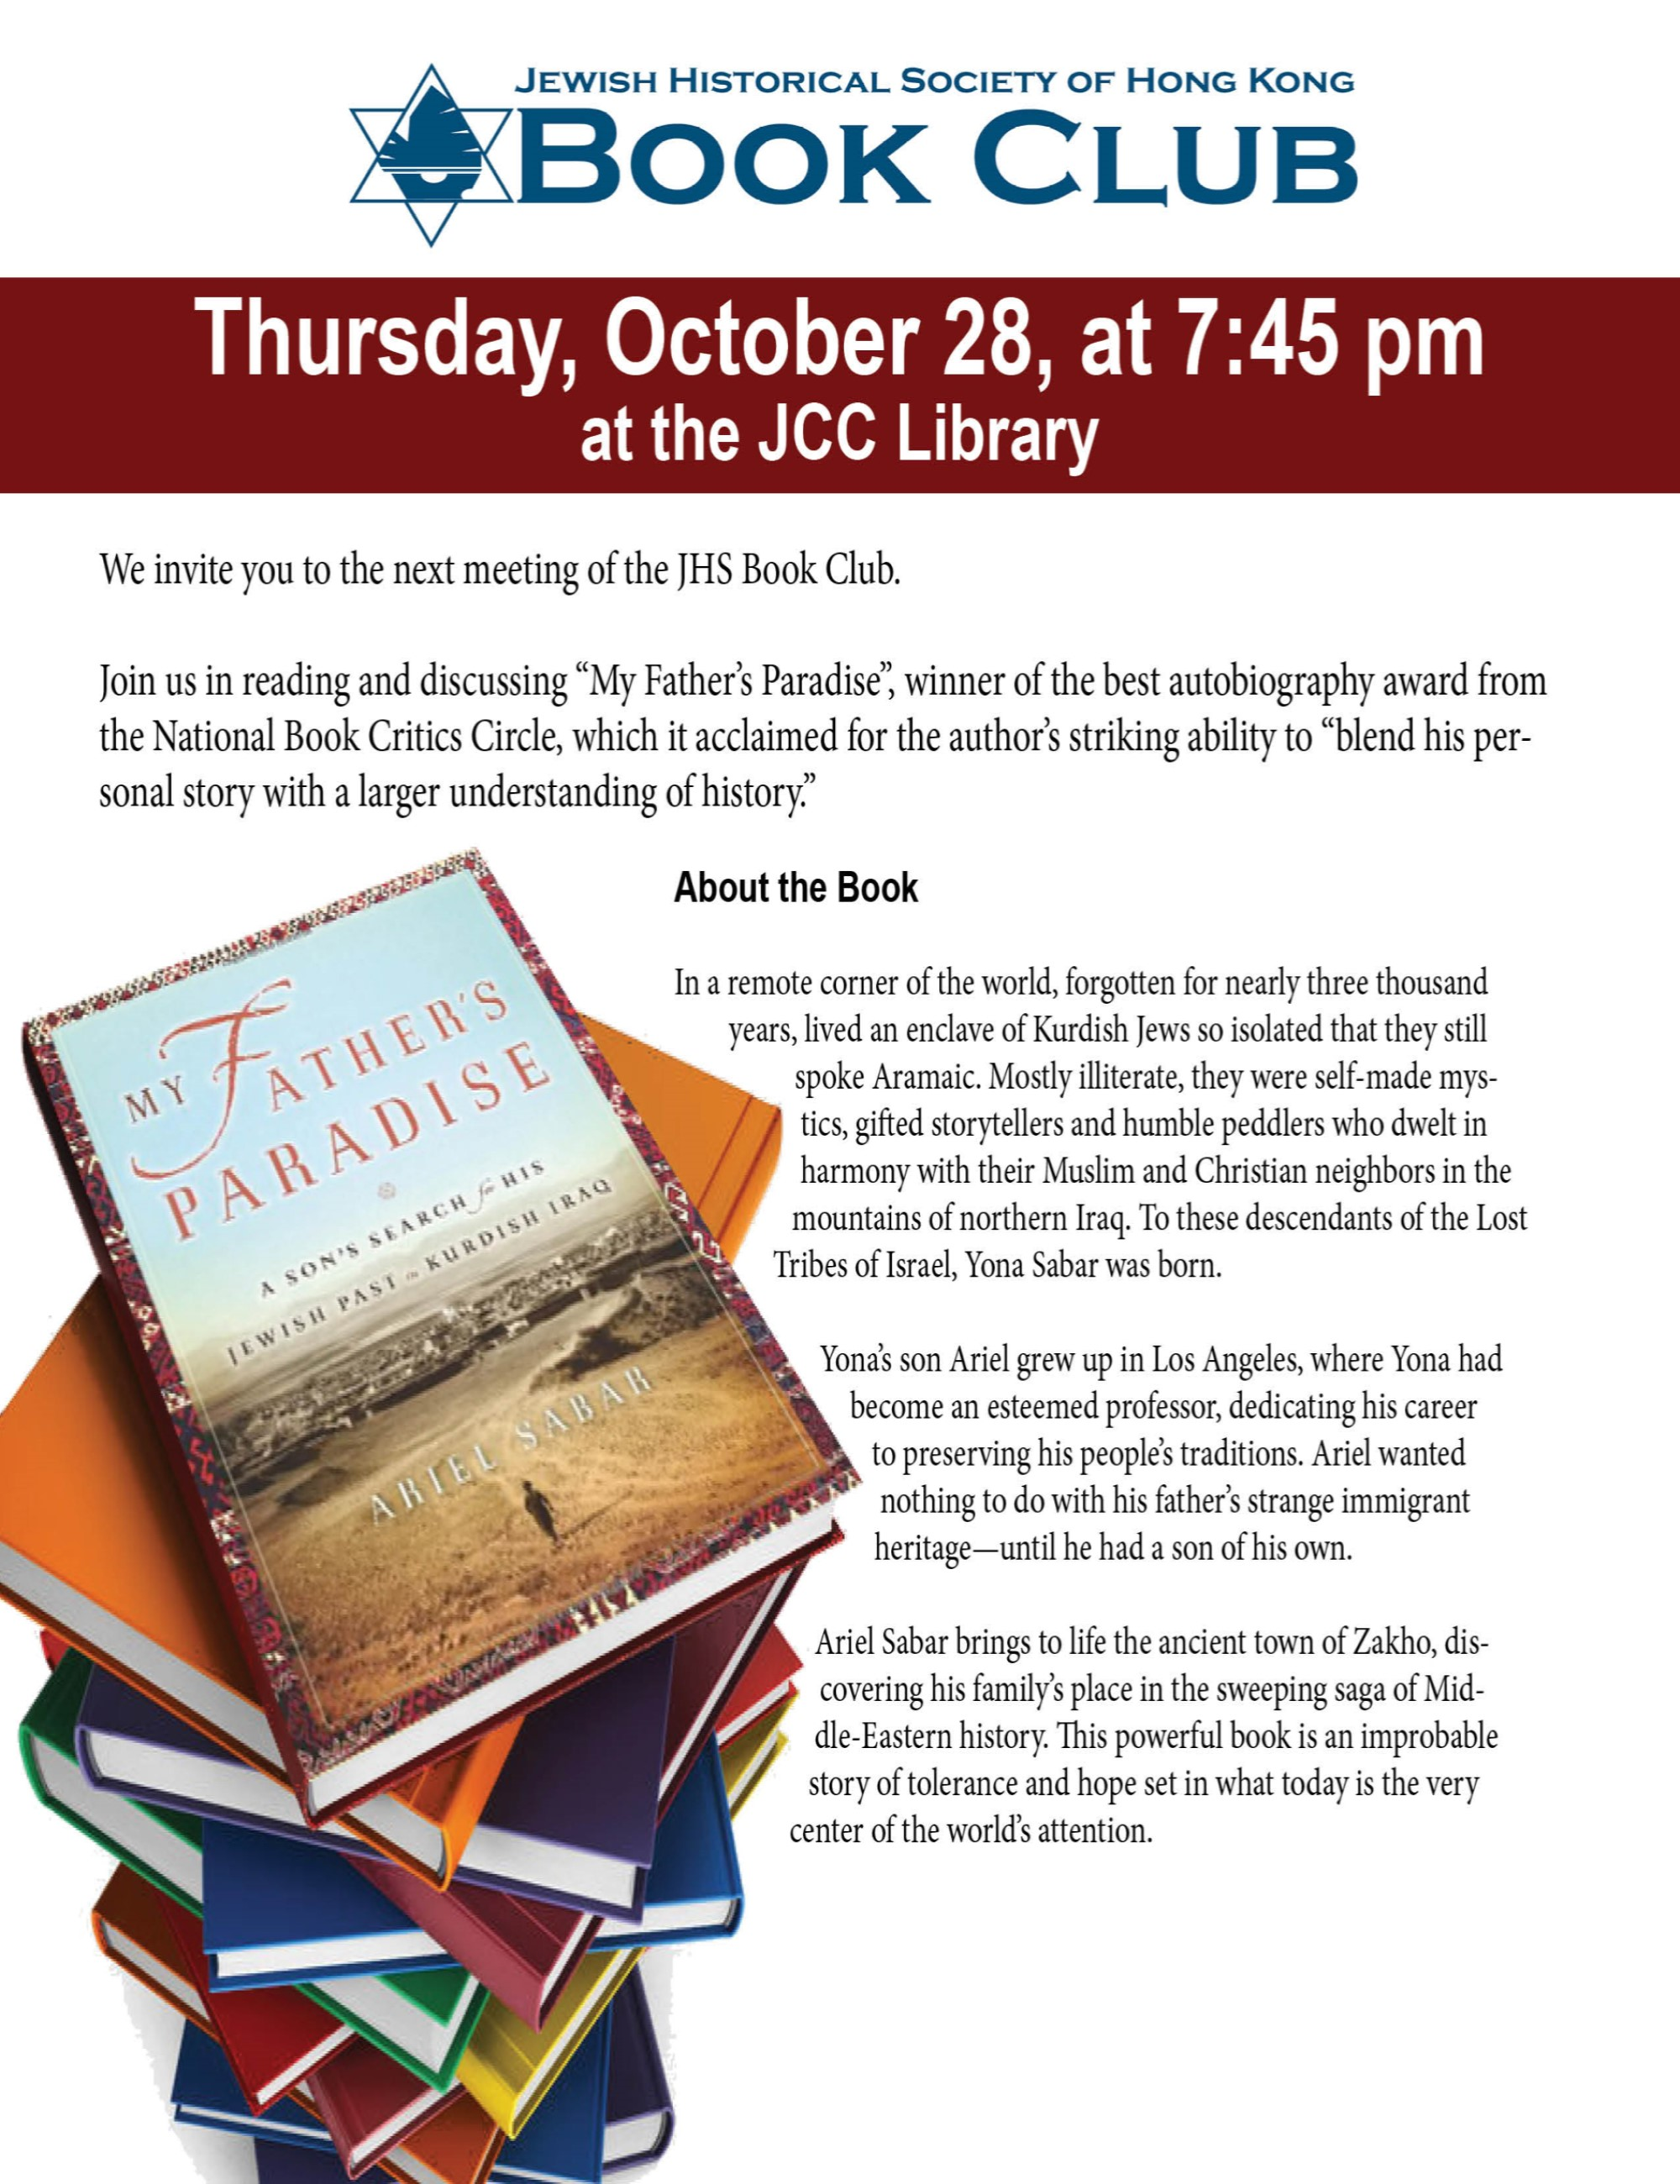 2021.10.28_Book Club Flyer_My Father's Paradise